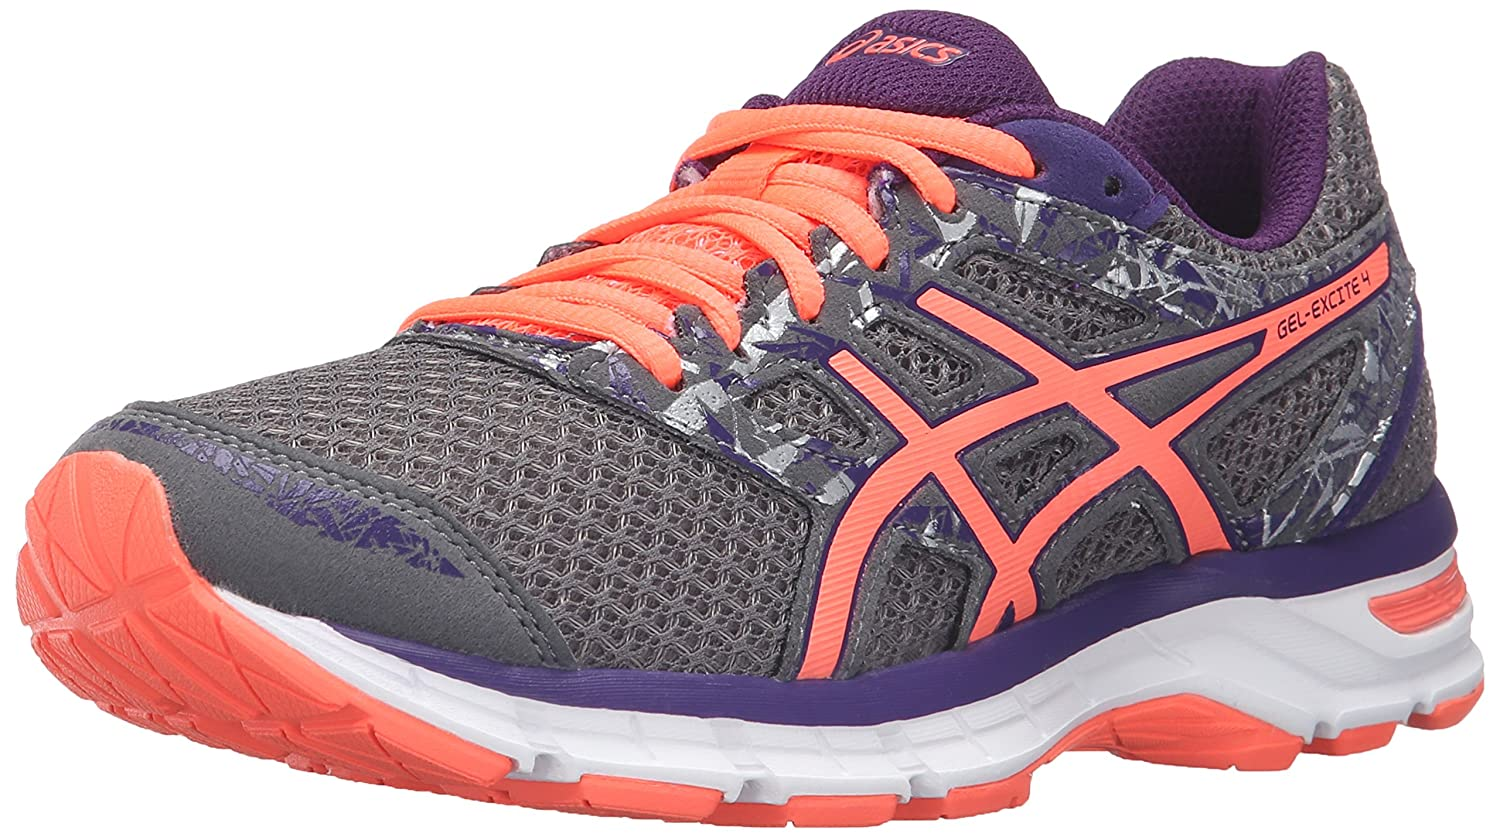 ASICS Women's Gel-Excite 4 Running Shoe B01MS9RIF5 5.5 W US|Shark/Flash Coral/Parachute Purple